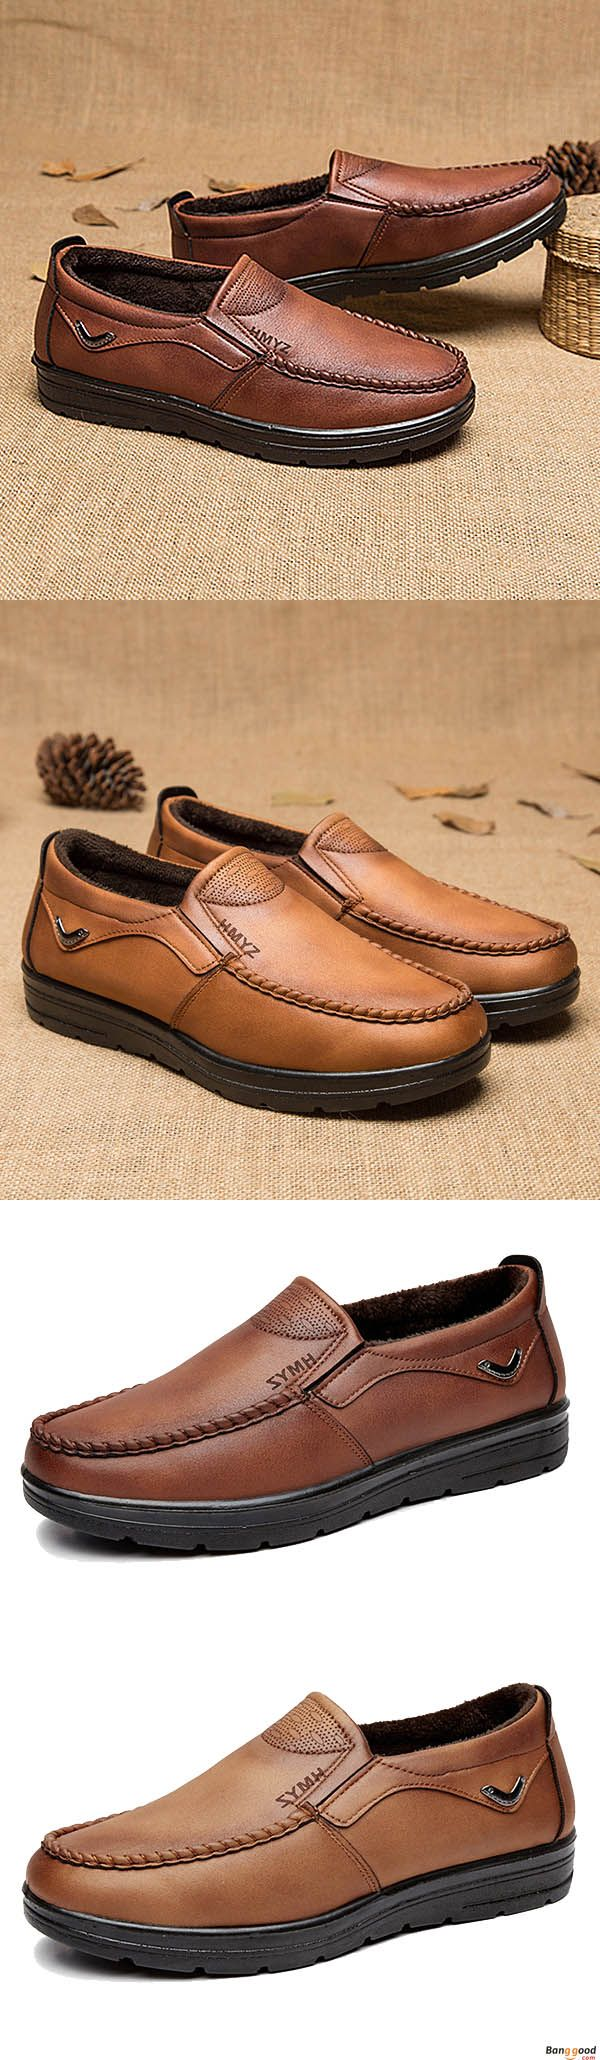 Men Comfy Soft Sole Warm Lining Microfiber Leather Casual Business Slip On Oxfords. Warm and comfy. Shop at banggood with super affordable price.